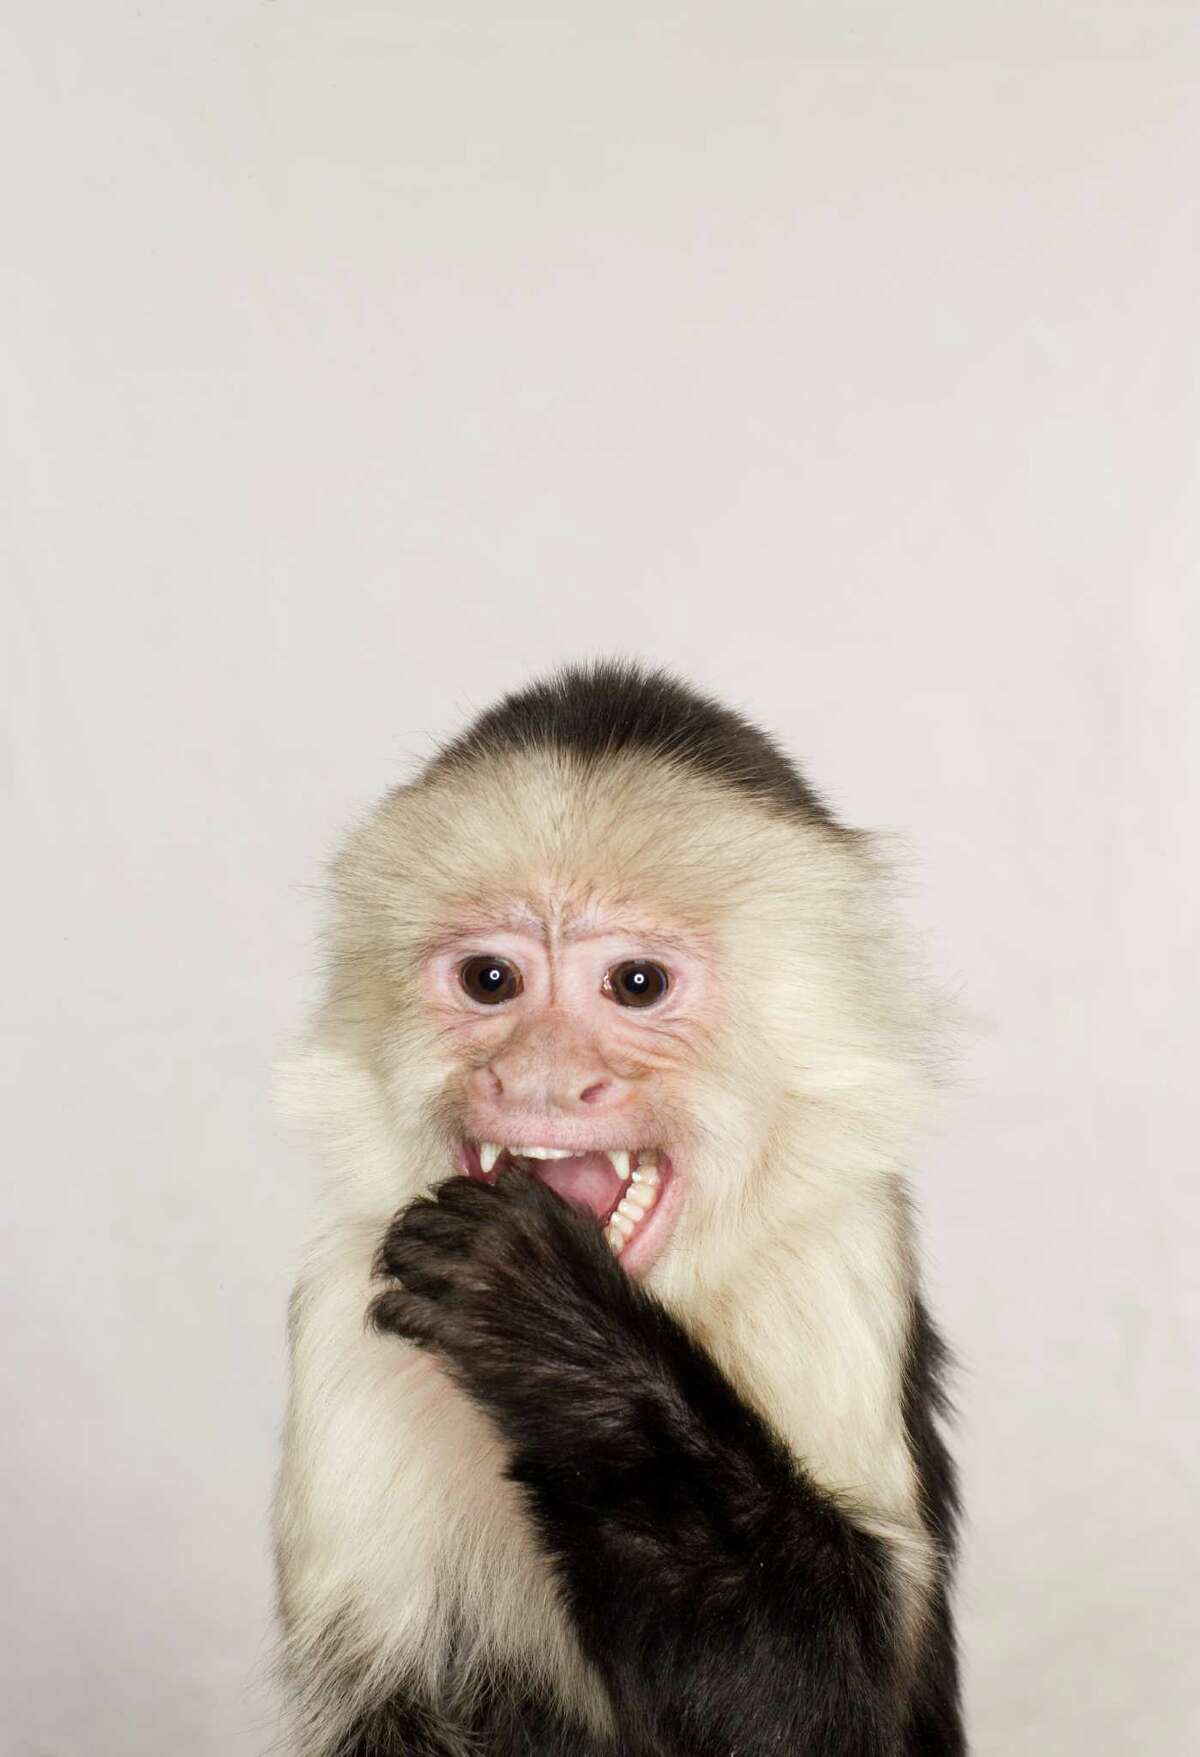 """""""S.A. man cited after pet monkey bites North Side bank employee's face"""" On Jan. 30, 2015, a San Antonio man was cited after his pet monkey, Louie, bit an employee when he took the monkey inside a bank. The man received two citations and faces fines up to $2,000. Read more: S.A. man cited after pet monkey bites North Side bank employee's face"""